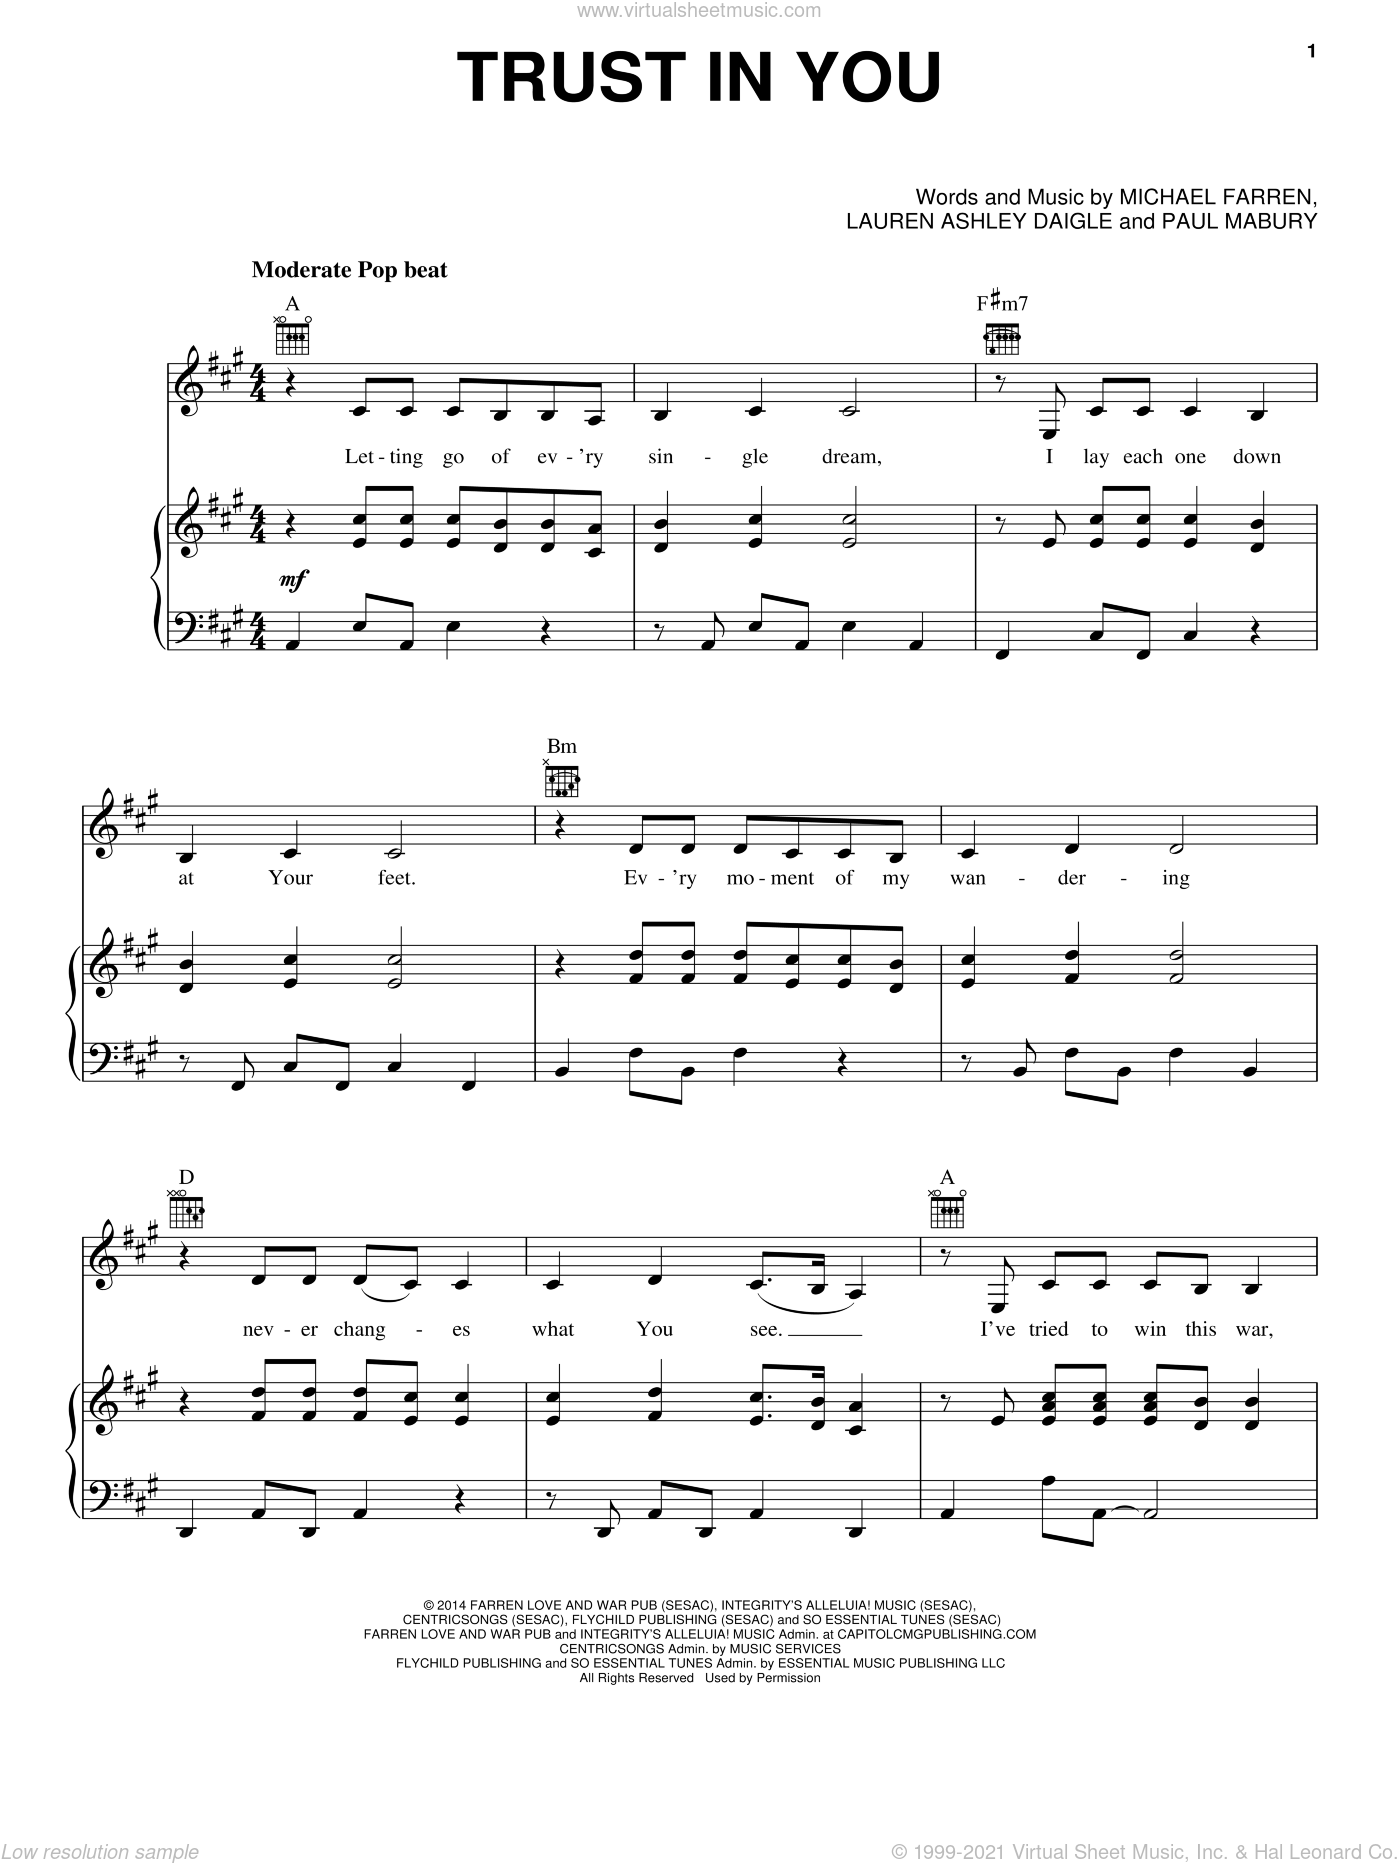 Trust In You sheet music for voice, piano or guitar by Lauren Daigle, Michael Farren and Paul Mabury, intermediate skill level